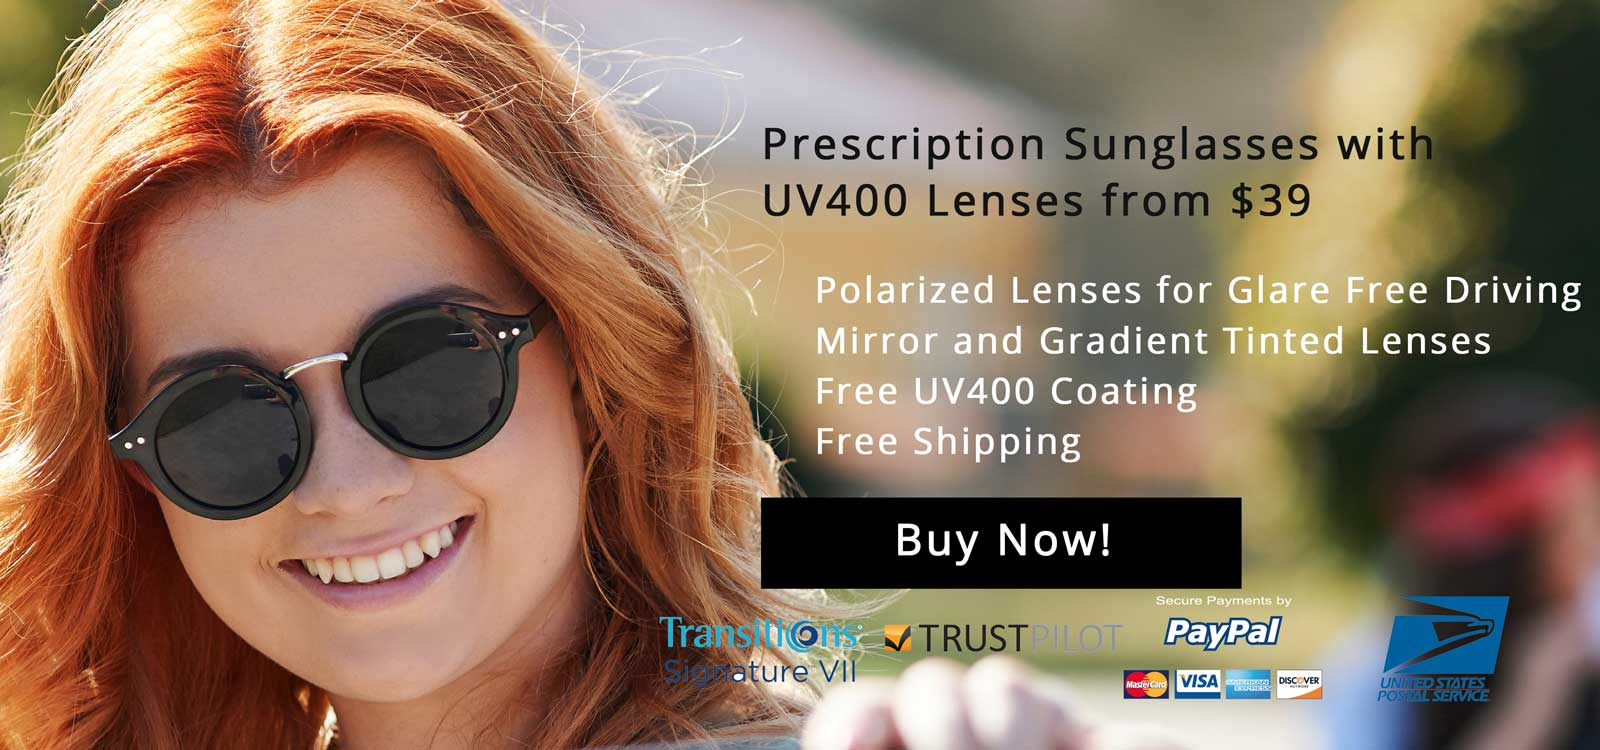 Prescription Sunglasses with UV400 Lenses from $39